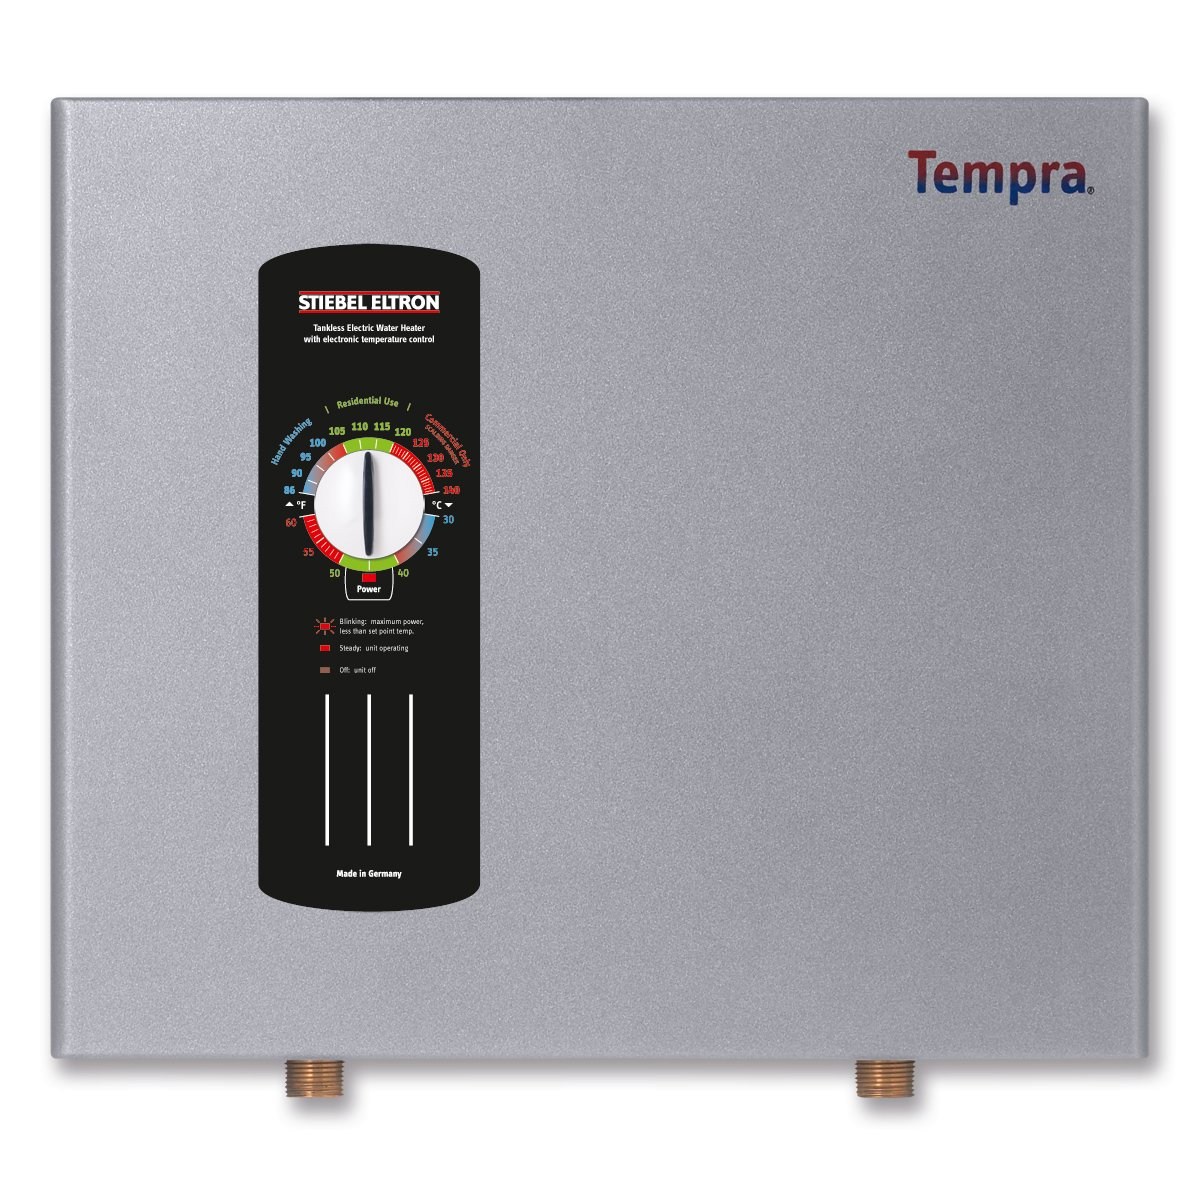 Stiebel Eltron 223422 240v 1 Phase 50 60 Hz 20 Kw Tempra 20 Whole House Tankless Electric Water Heater Amazon Com